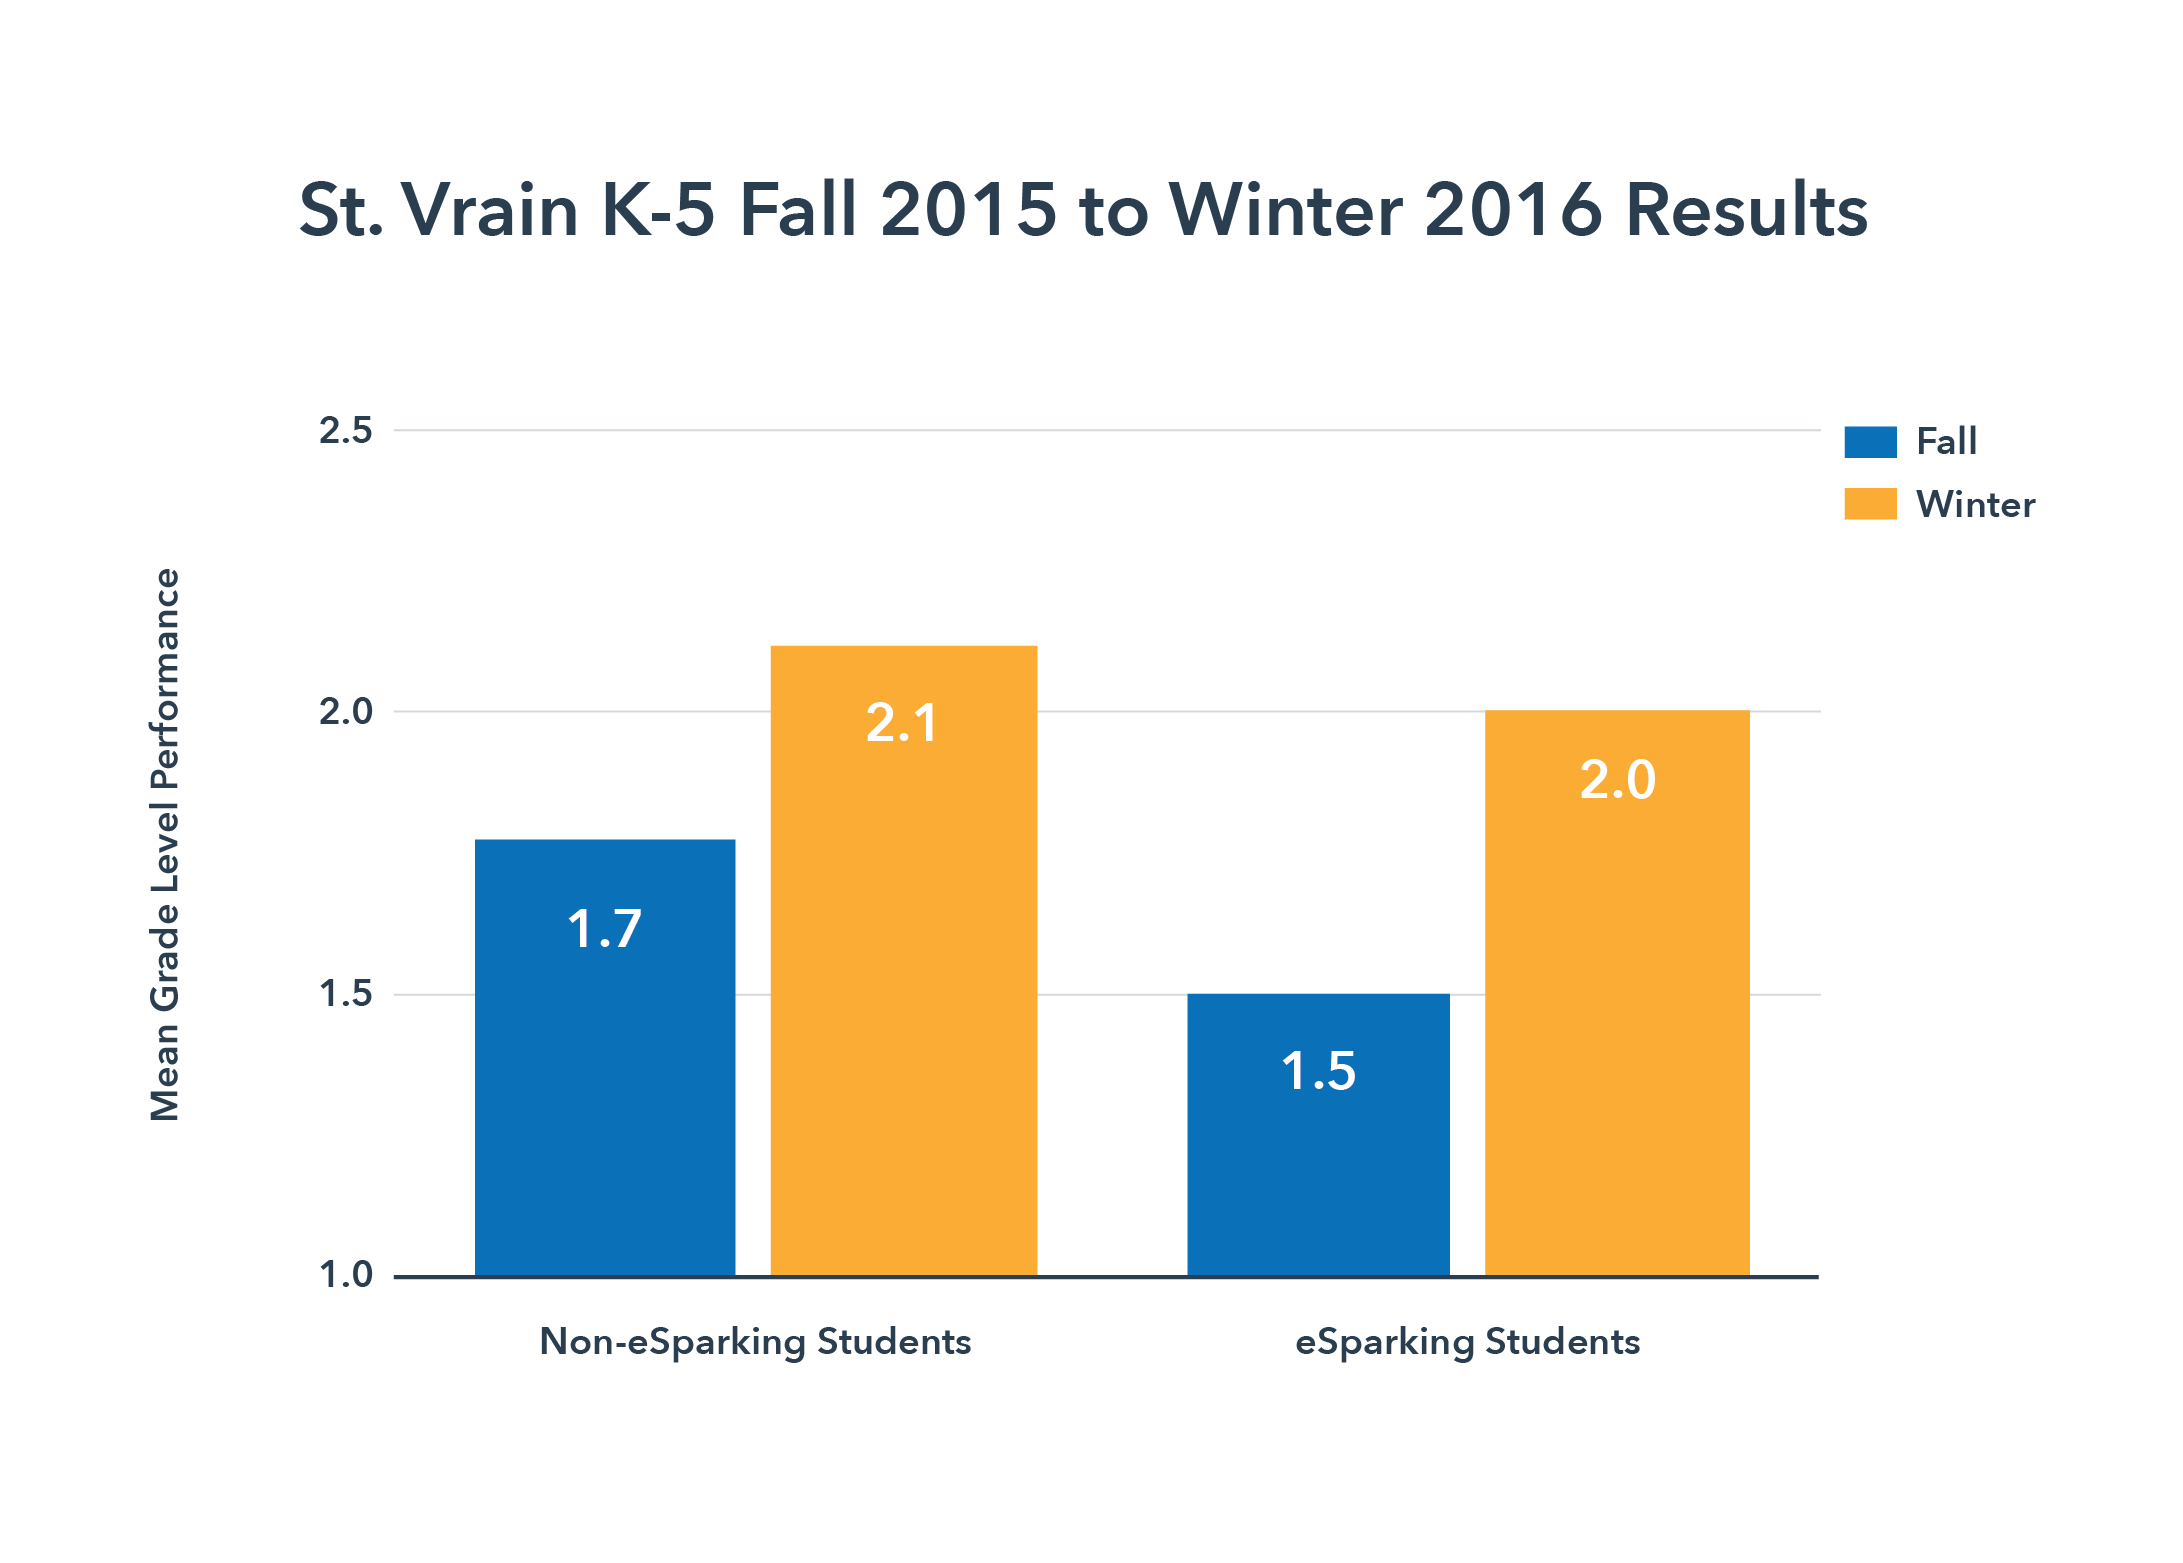 Fall 2015 to Winter 2016 Results